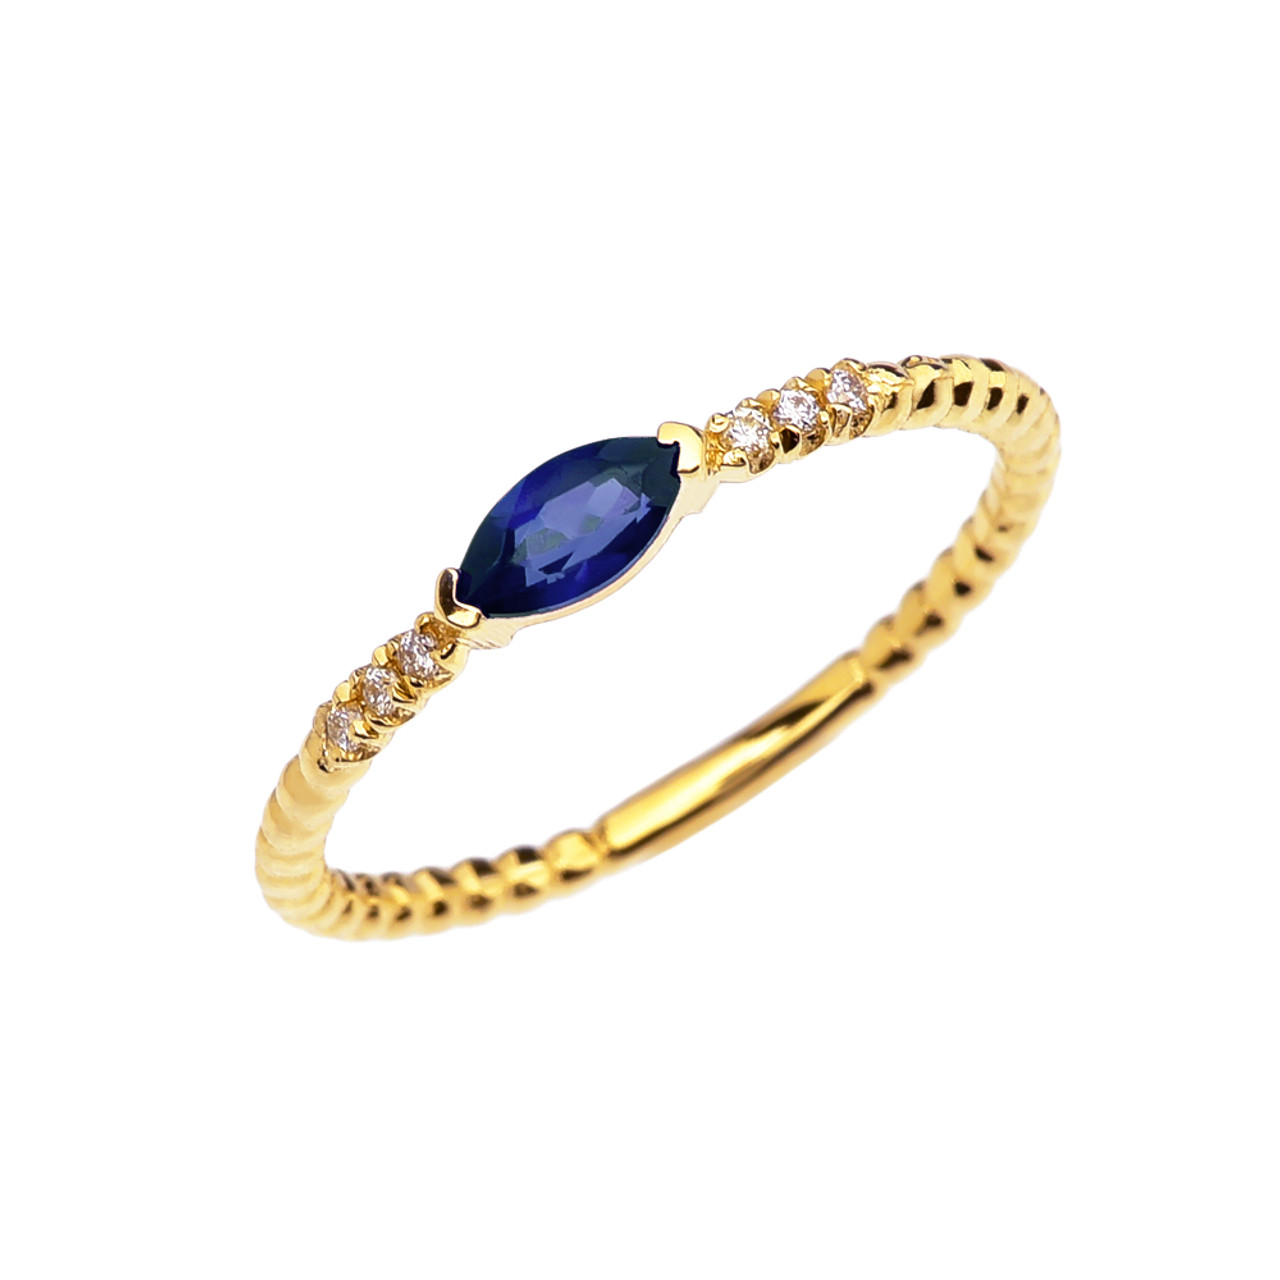 shiny gold home adr delicate blue sapphire nature nr ring product